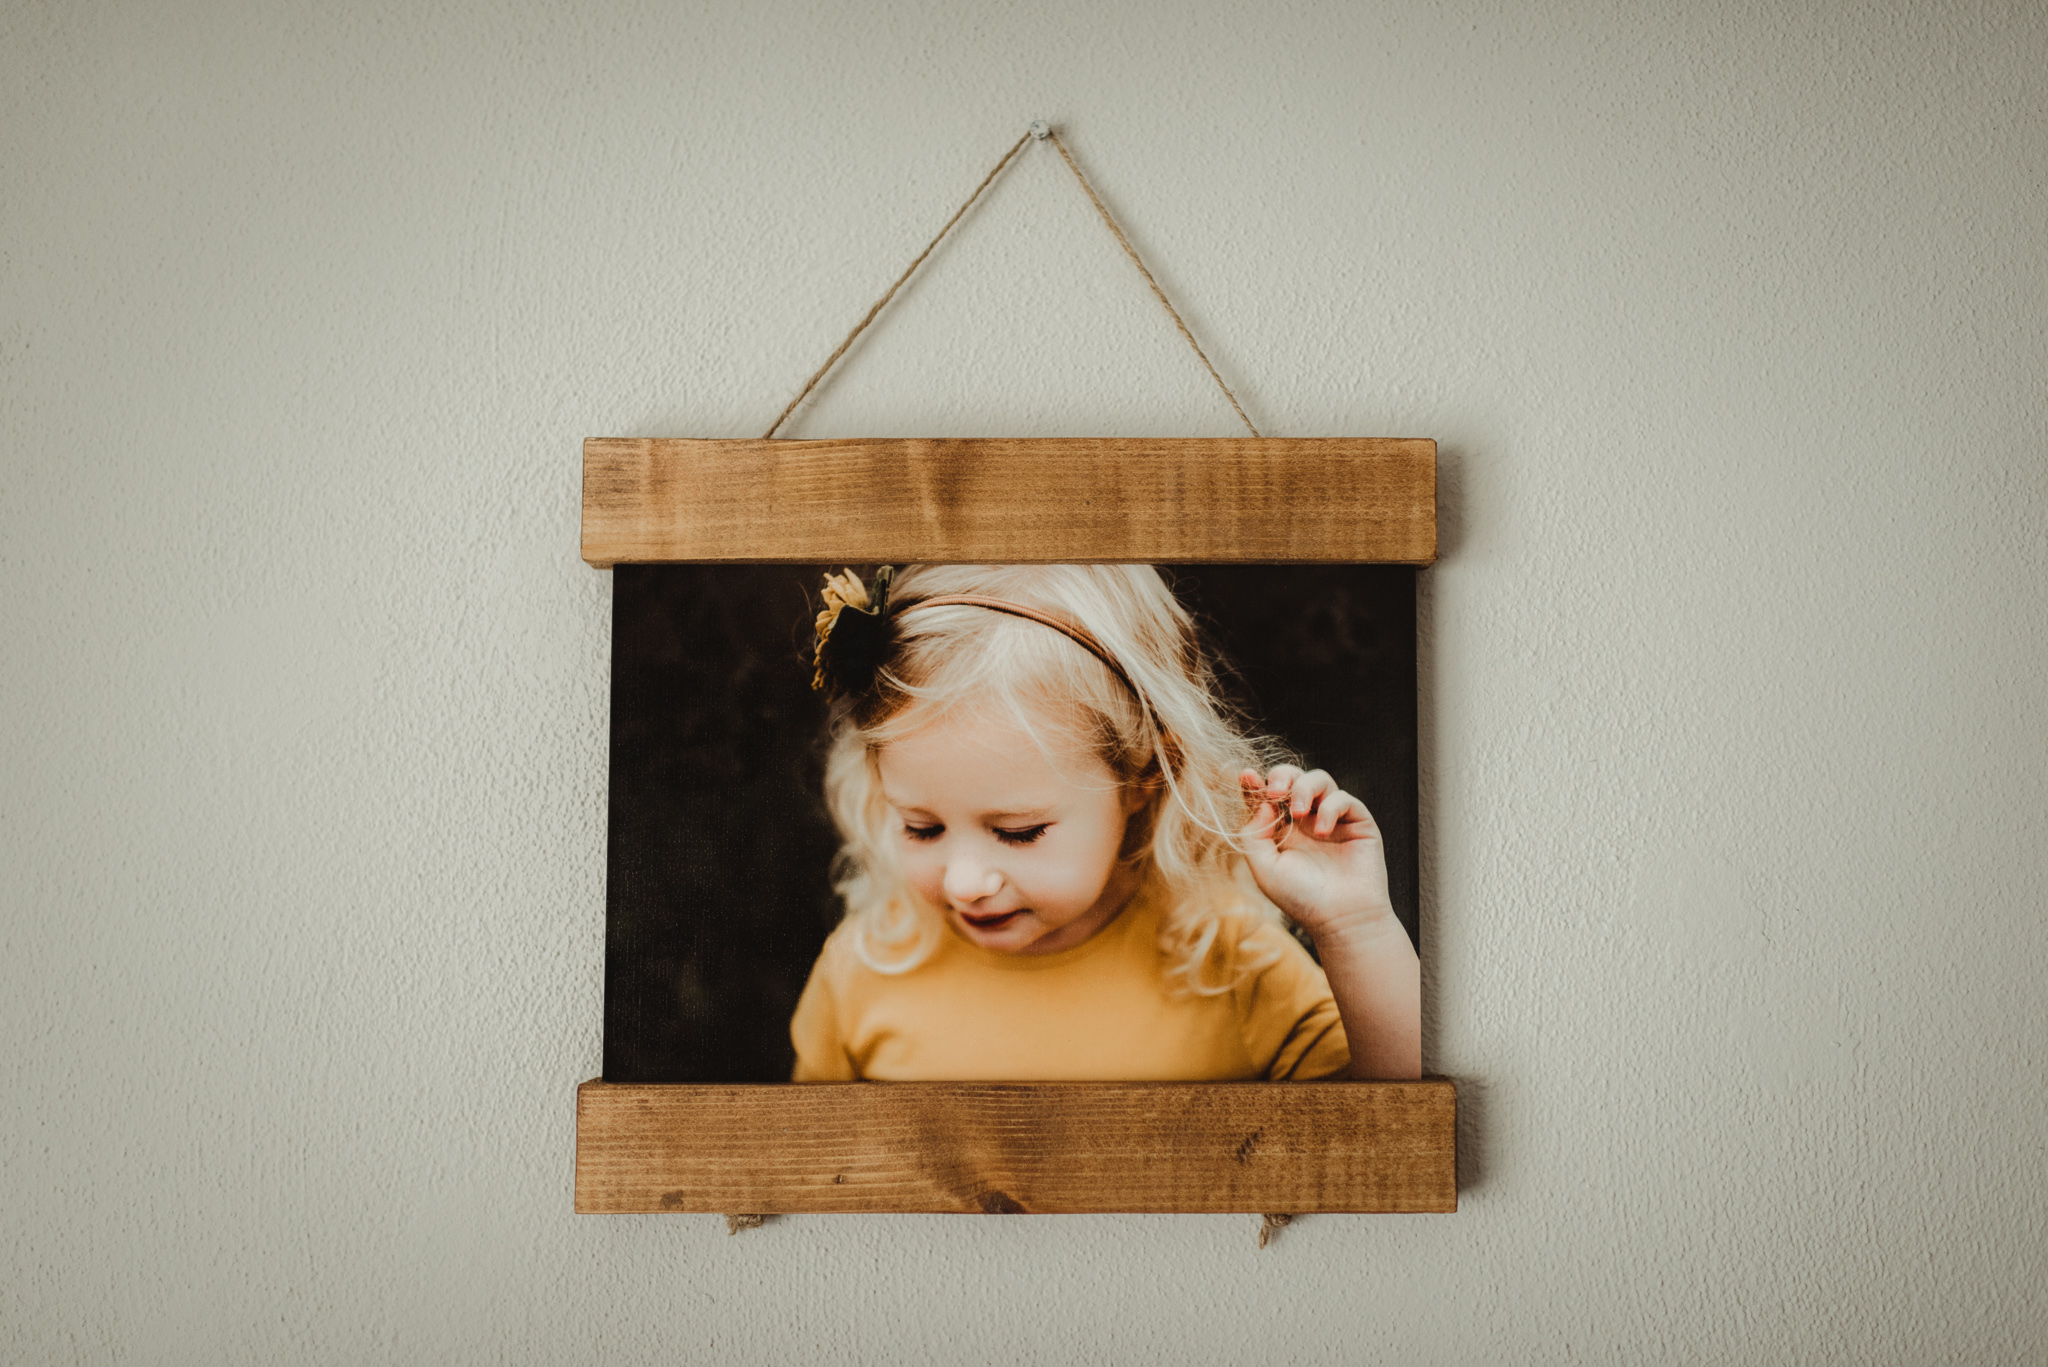 Wood Hanger Frames - Locally made- beautifully hand crafted - wood hanger frames allow for stunning display of your mounted prints.from $28